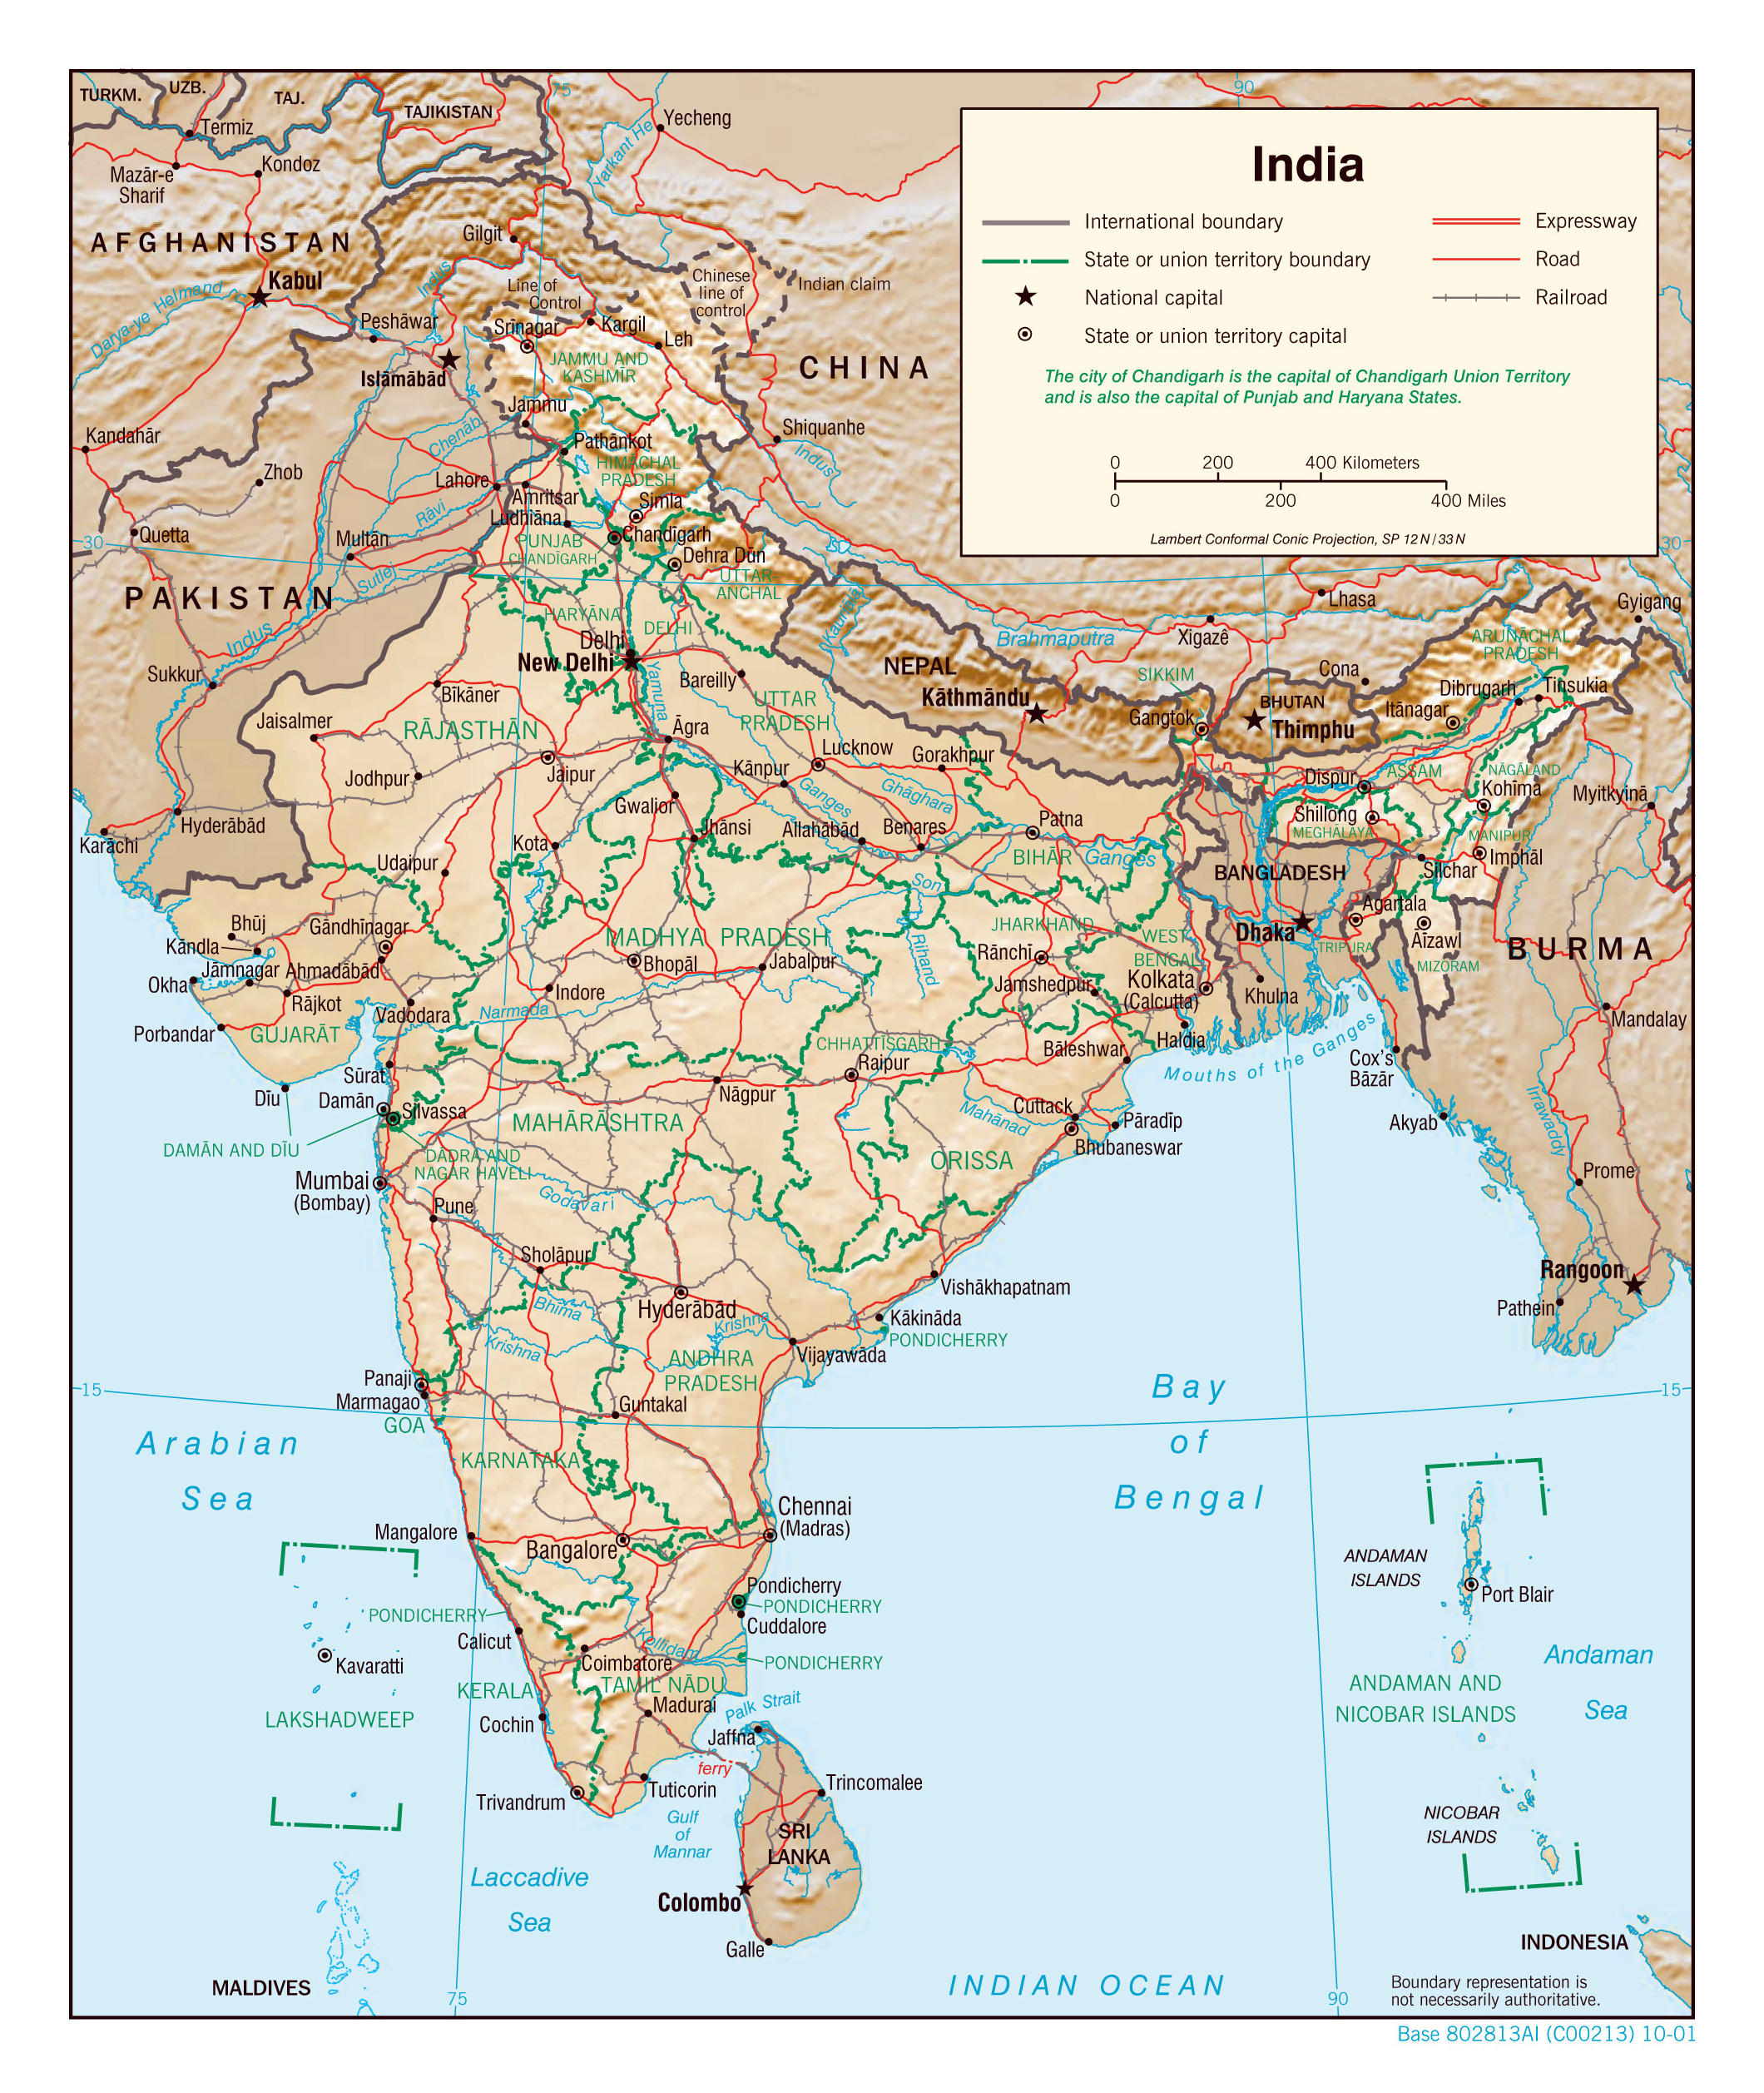 Large Detailed Political And Administrative Map Of India With Relief,  Roads, Railroads And Major